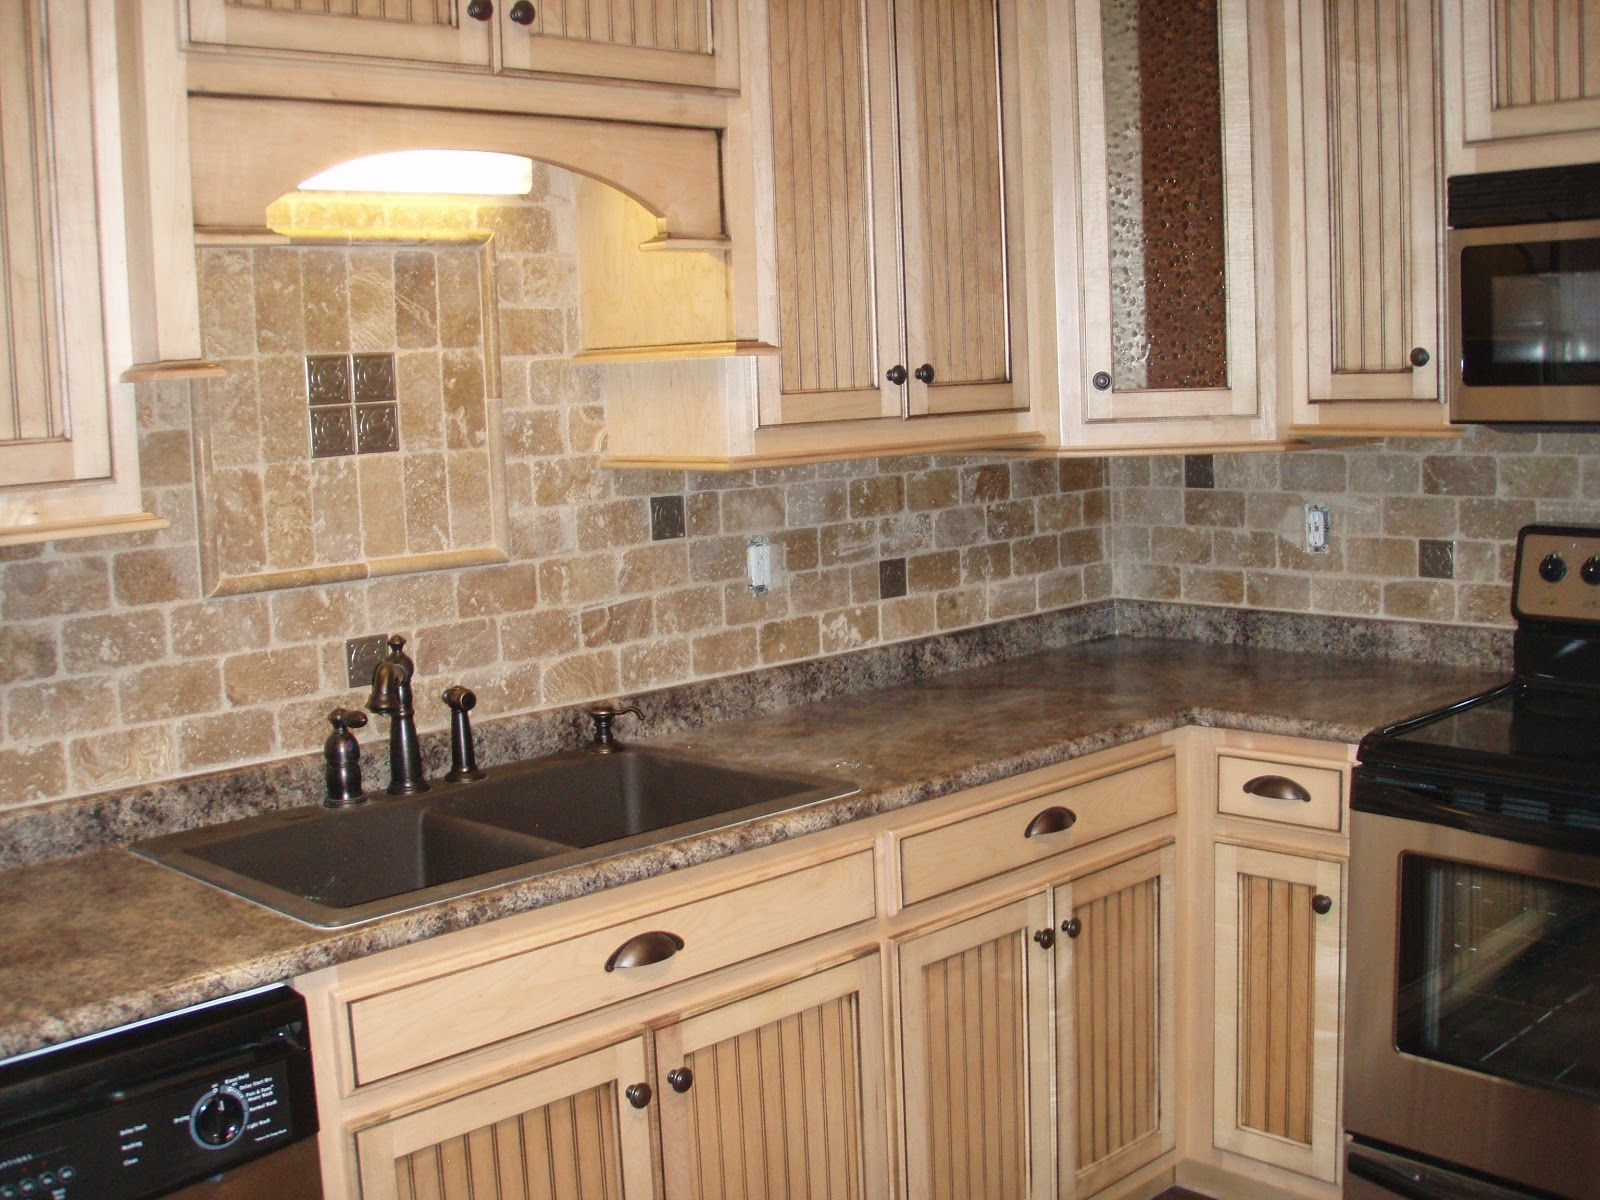 Backsplash White Cabinets Stone Kitchen Backsplash With White Cabinets Backsplash